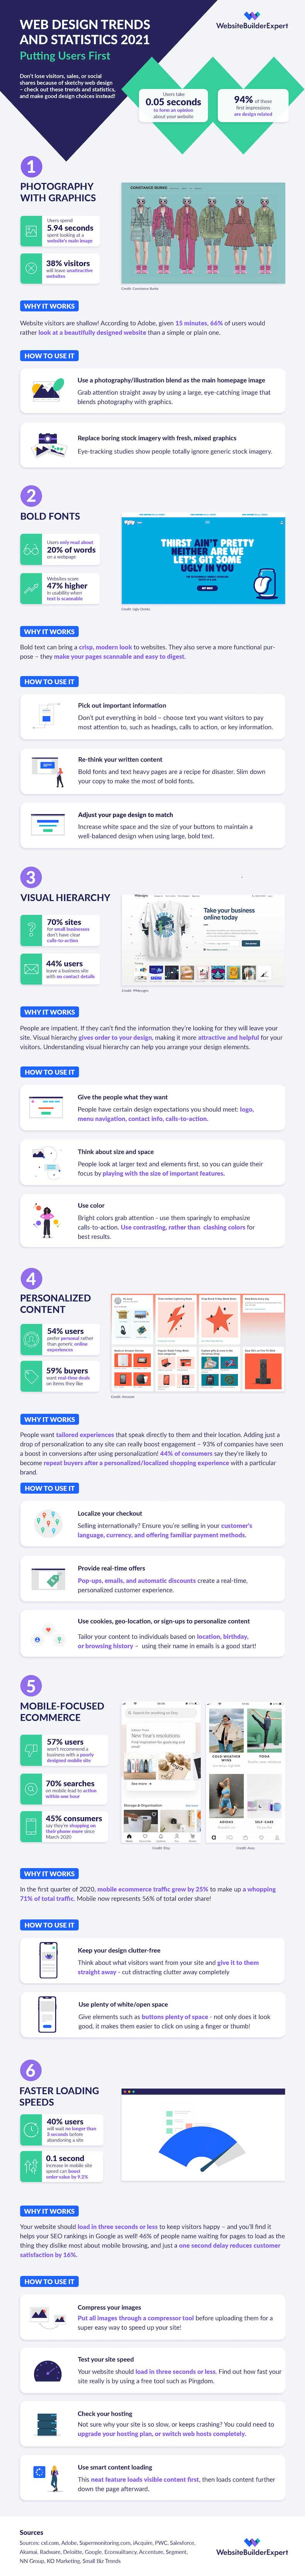 2021 Web Design Stats and Trends